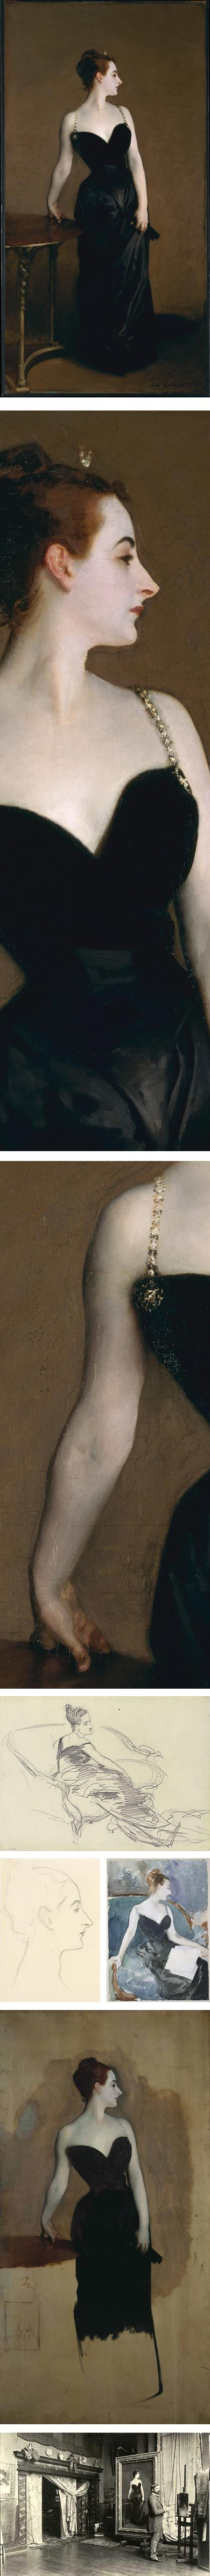 Sargent's Madame X in detail. That arm, that gorgeously articulated arm.